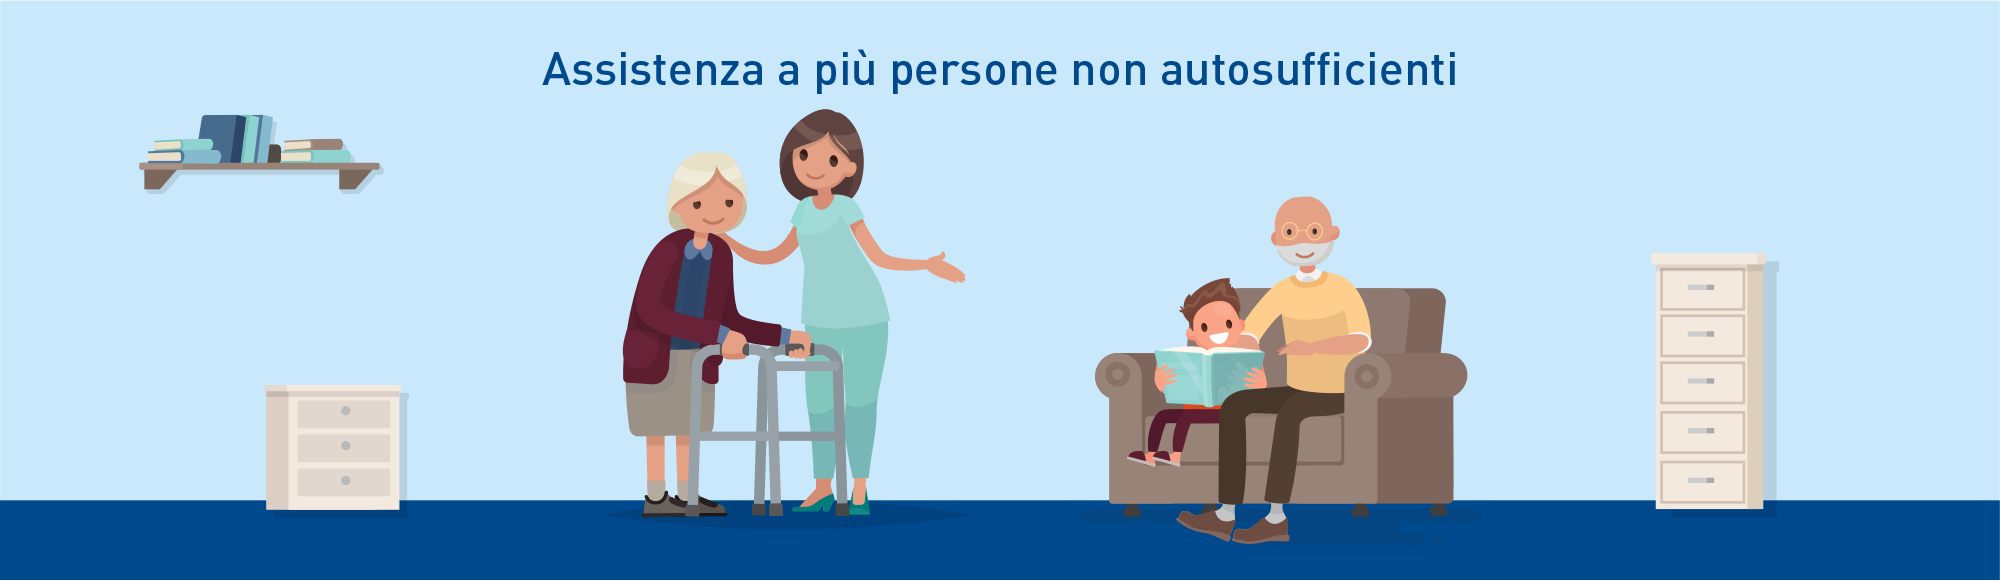 Assistenza non autosufficienti